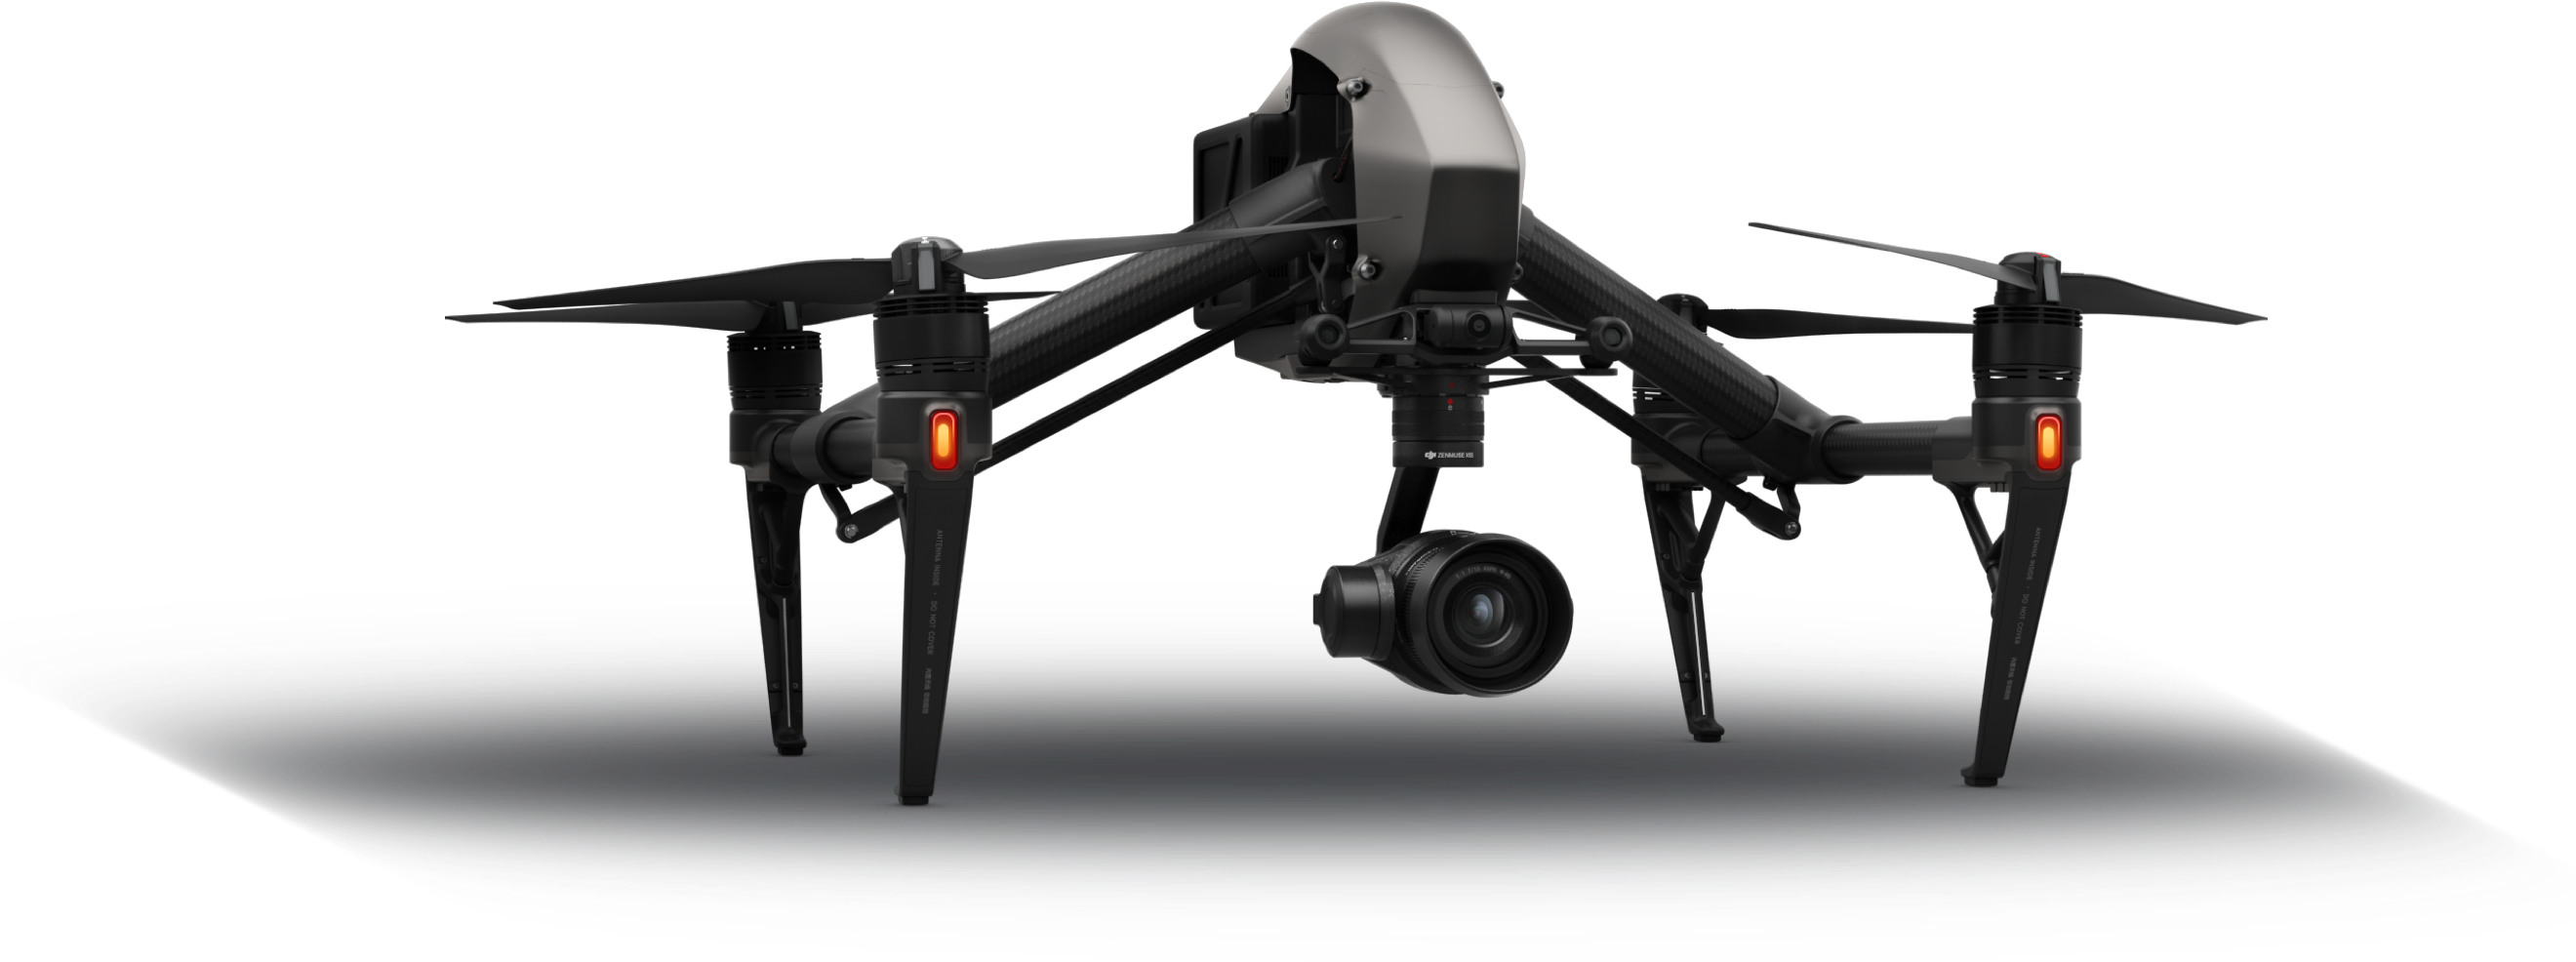 dji x5s lens with drone